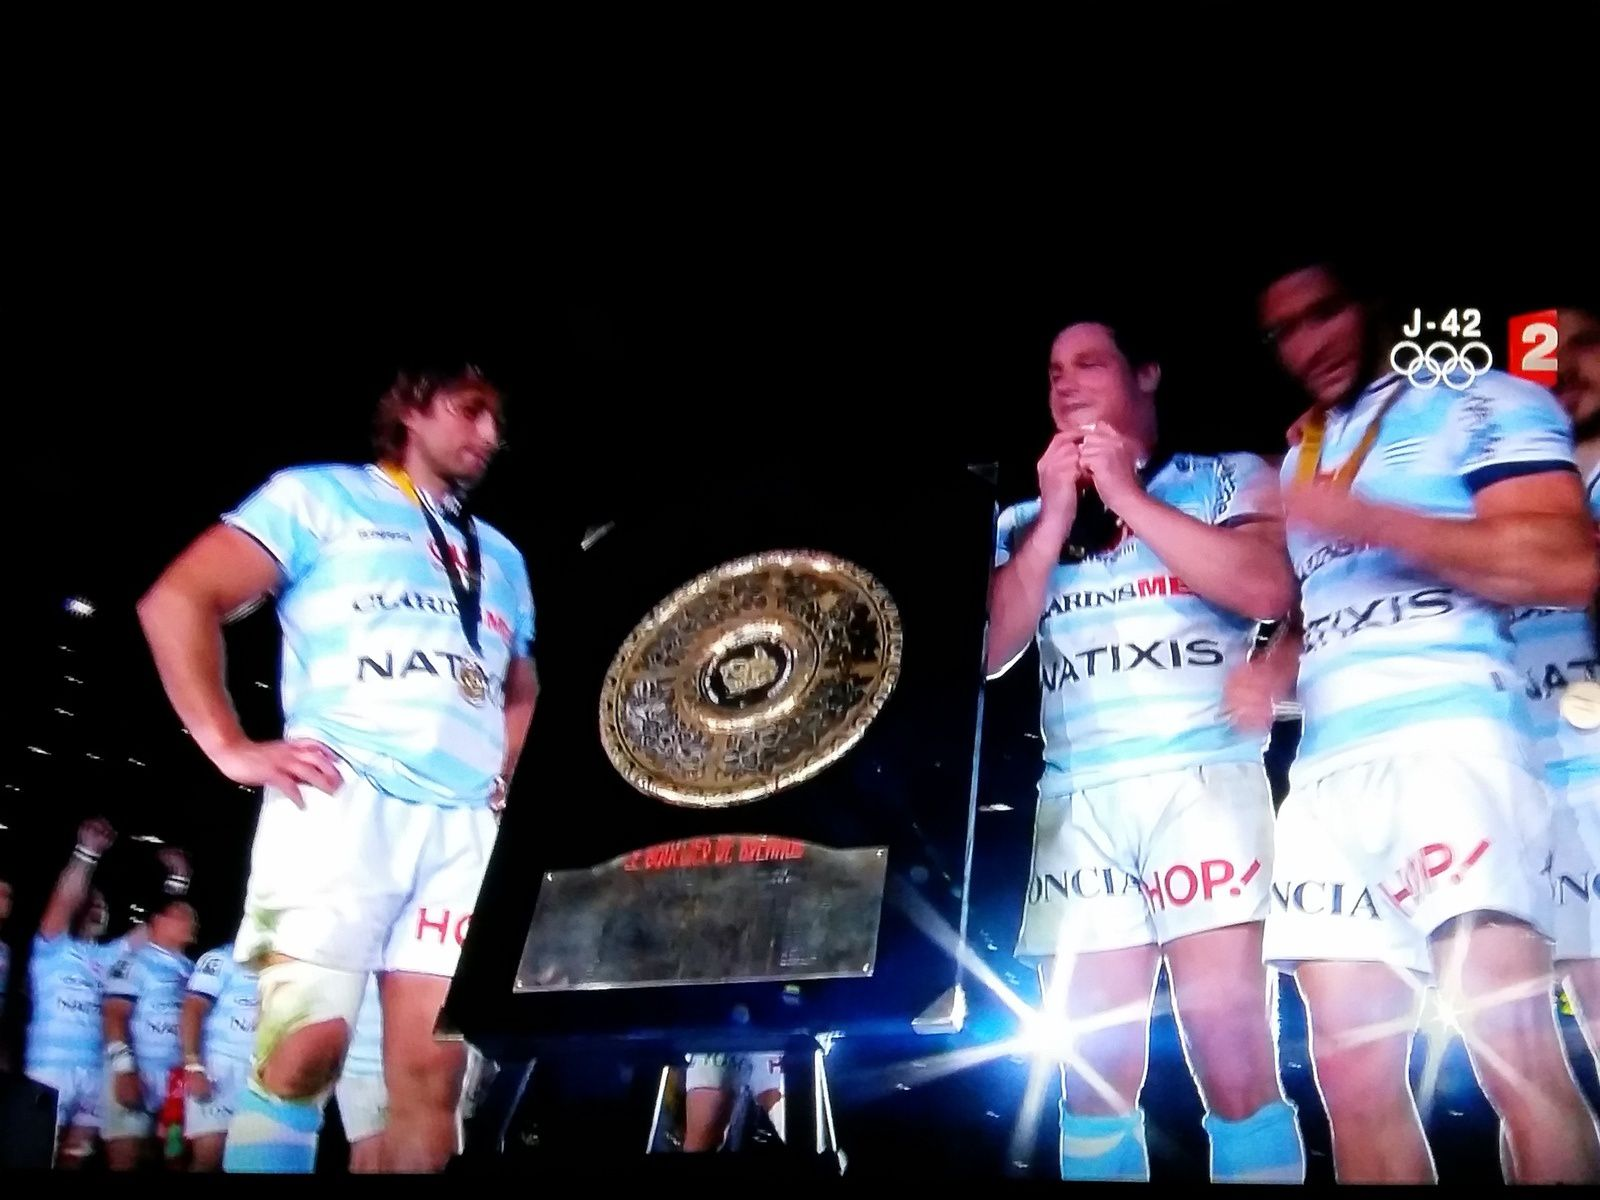 VICTOIRE DU RACING 92 - COLOMBES !